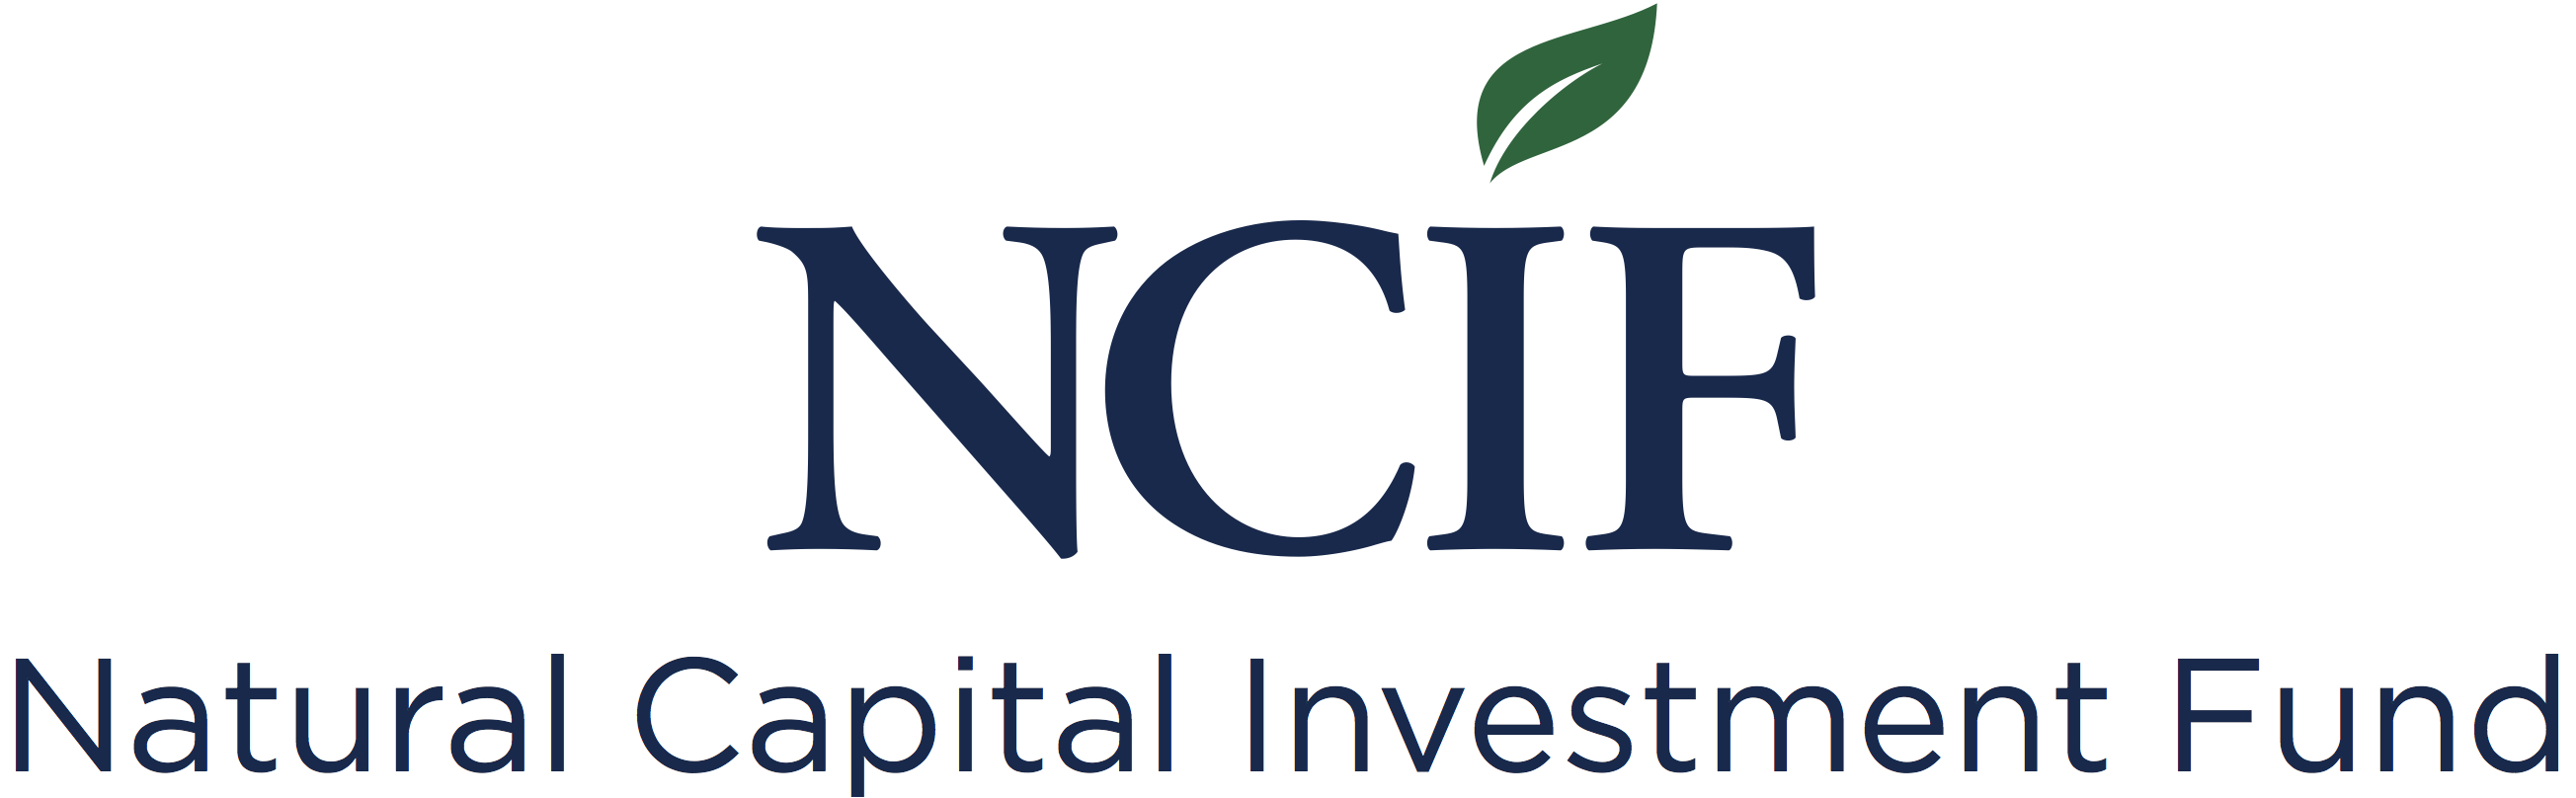 NCIF-logo-with-name-300dpi.jpg